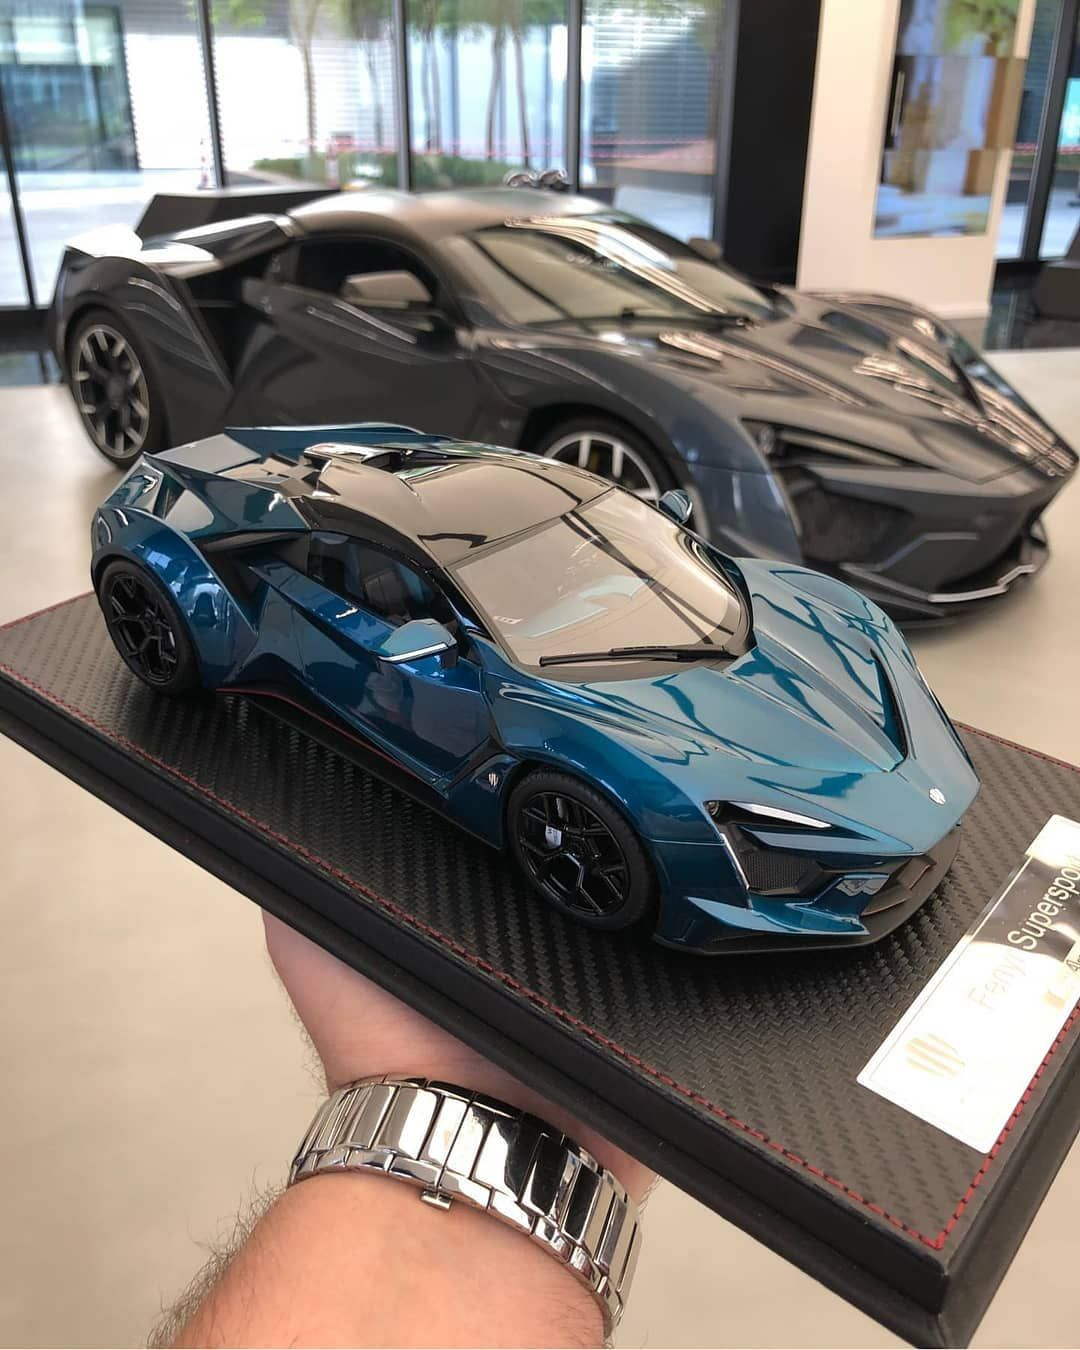 Supercar On Instagram Father Son Toys Supercar Car Wmotors Photo By Lemansheroes Wmotors Fenyr In 2020 Super Cars Sports Cars Luxury Super Luxury Cars